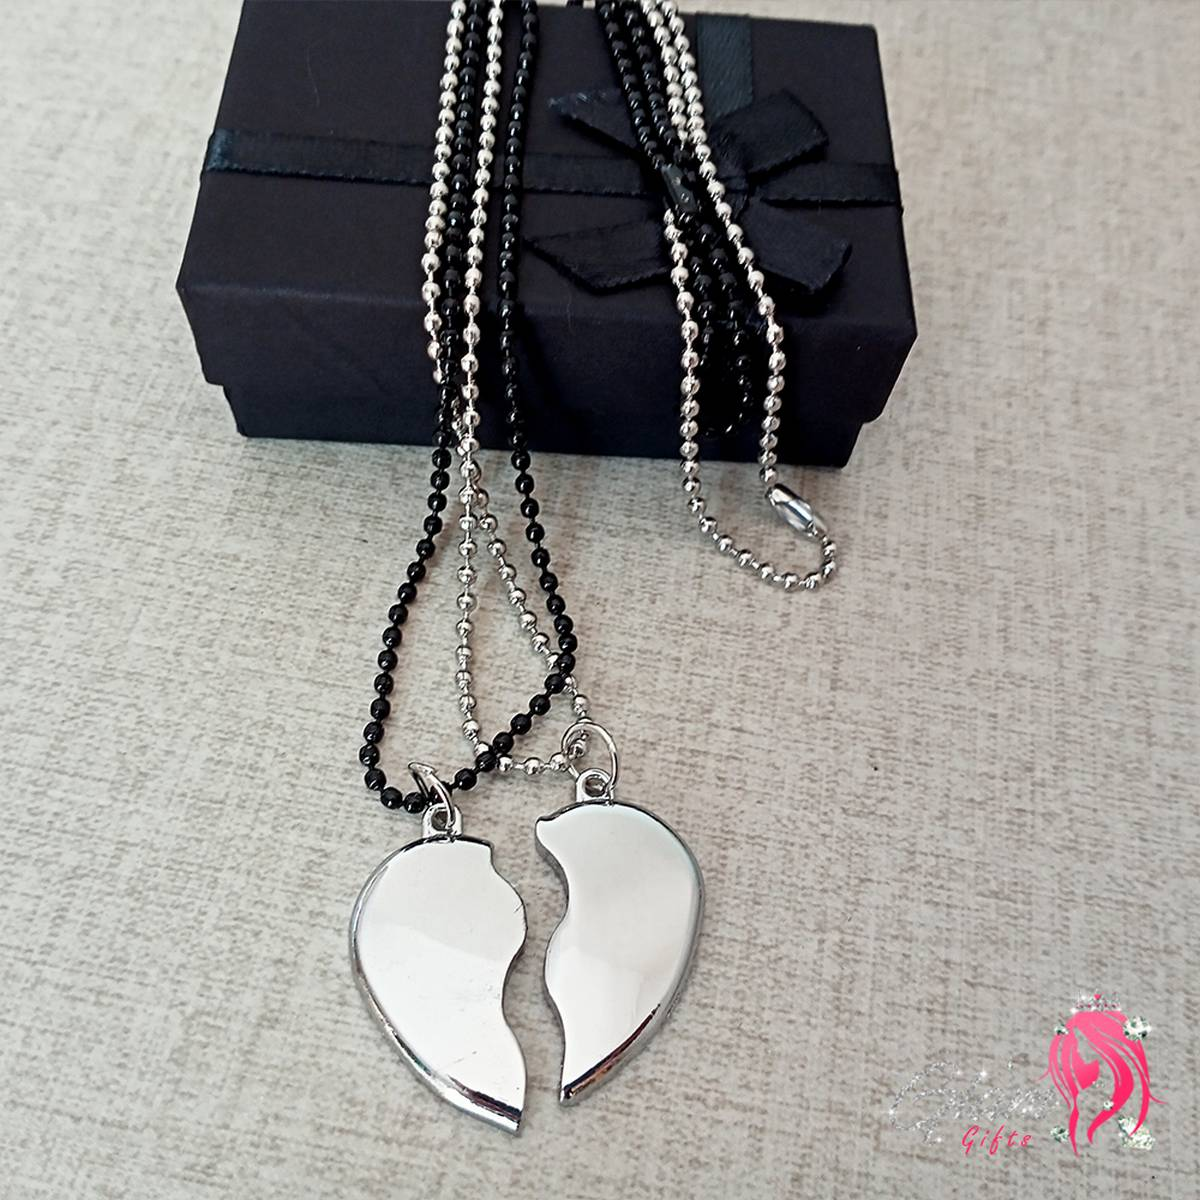 Heavy Metal Magnetic Heart Pendant Necklace gift for Friends Couples Pair of 2 Locket with Gift Box